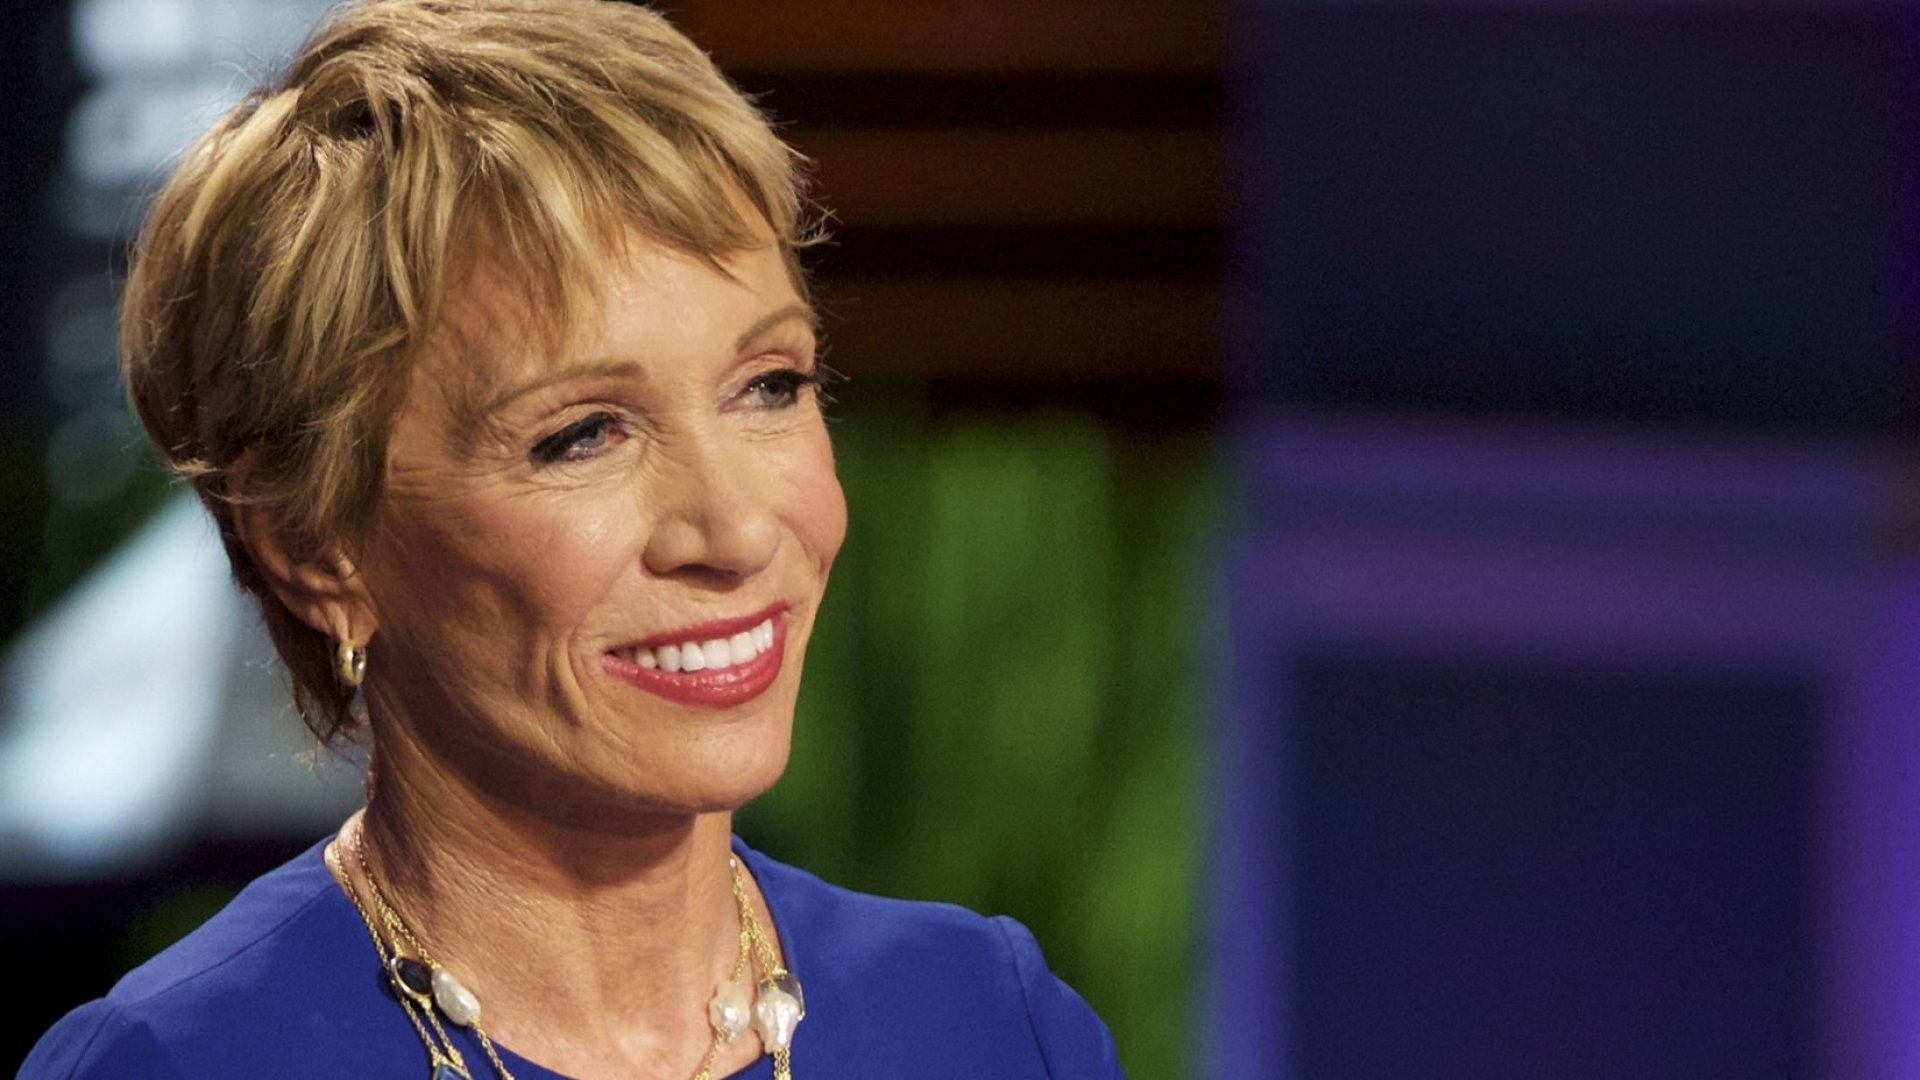 Barbara Corcoran Says This 1 Unexpected Thing Makes a Business Partnership Successful